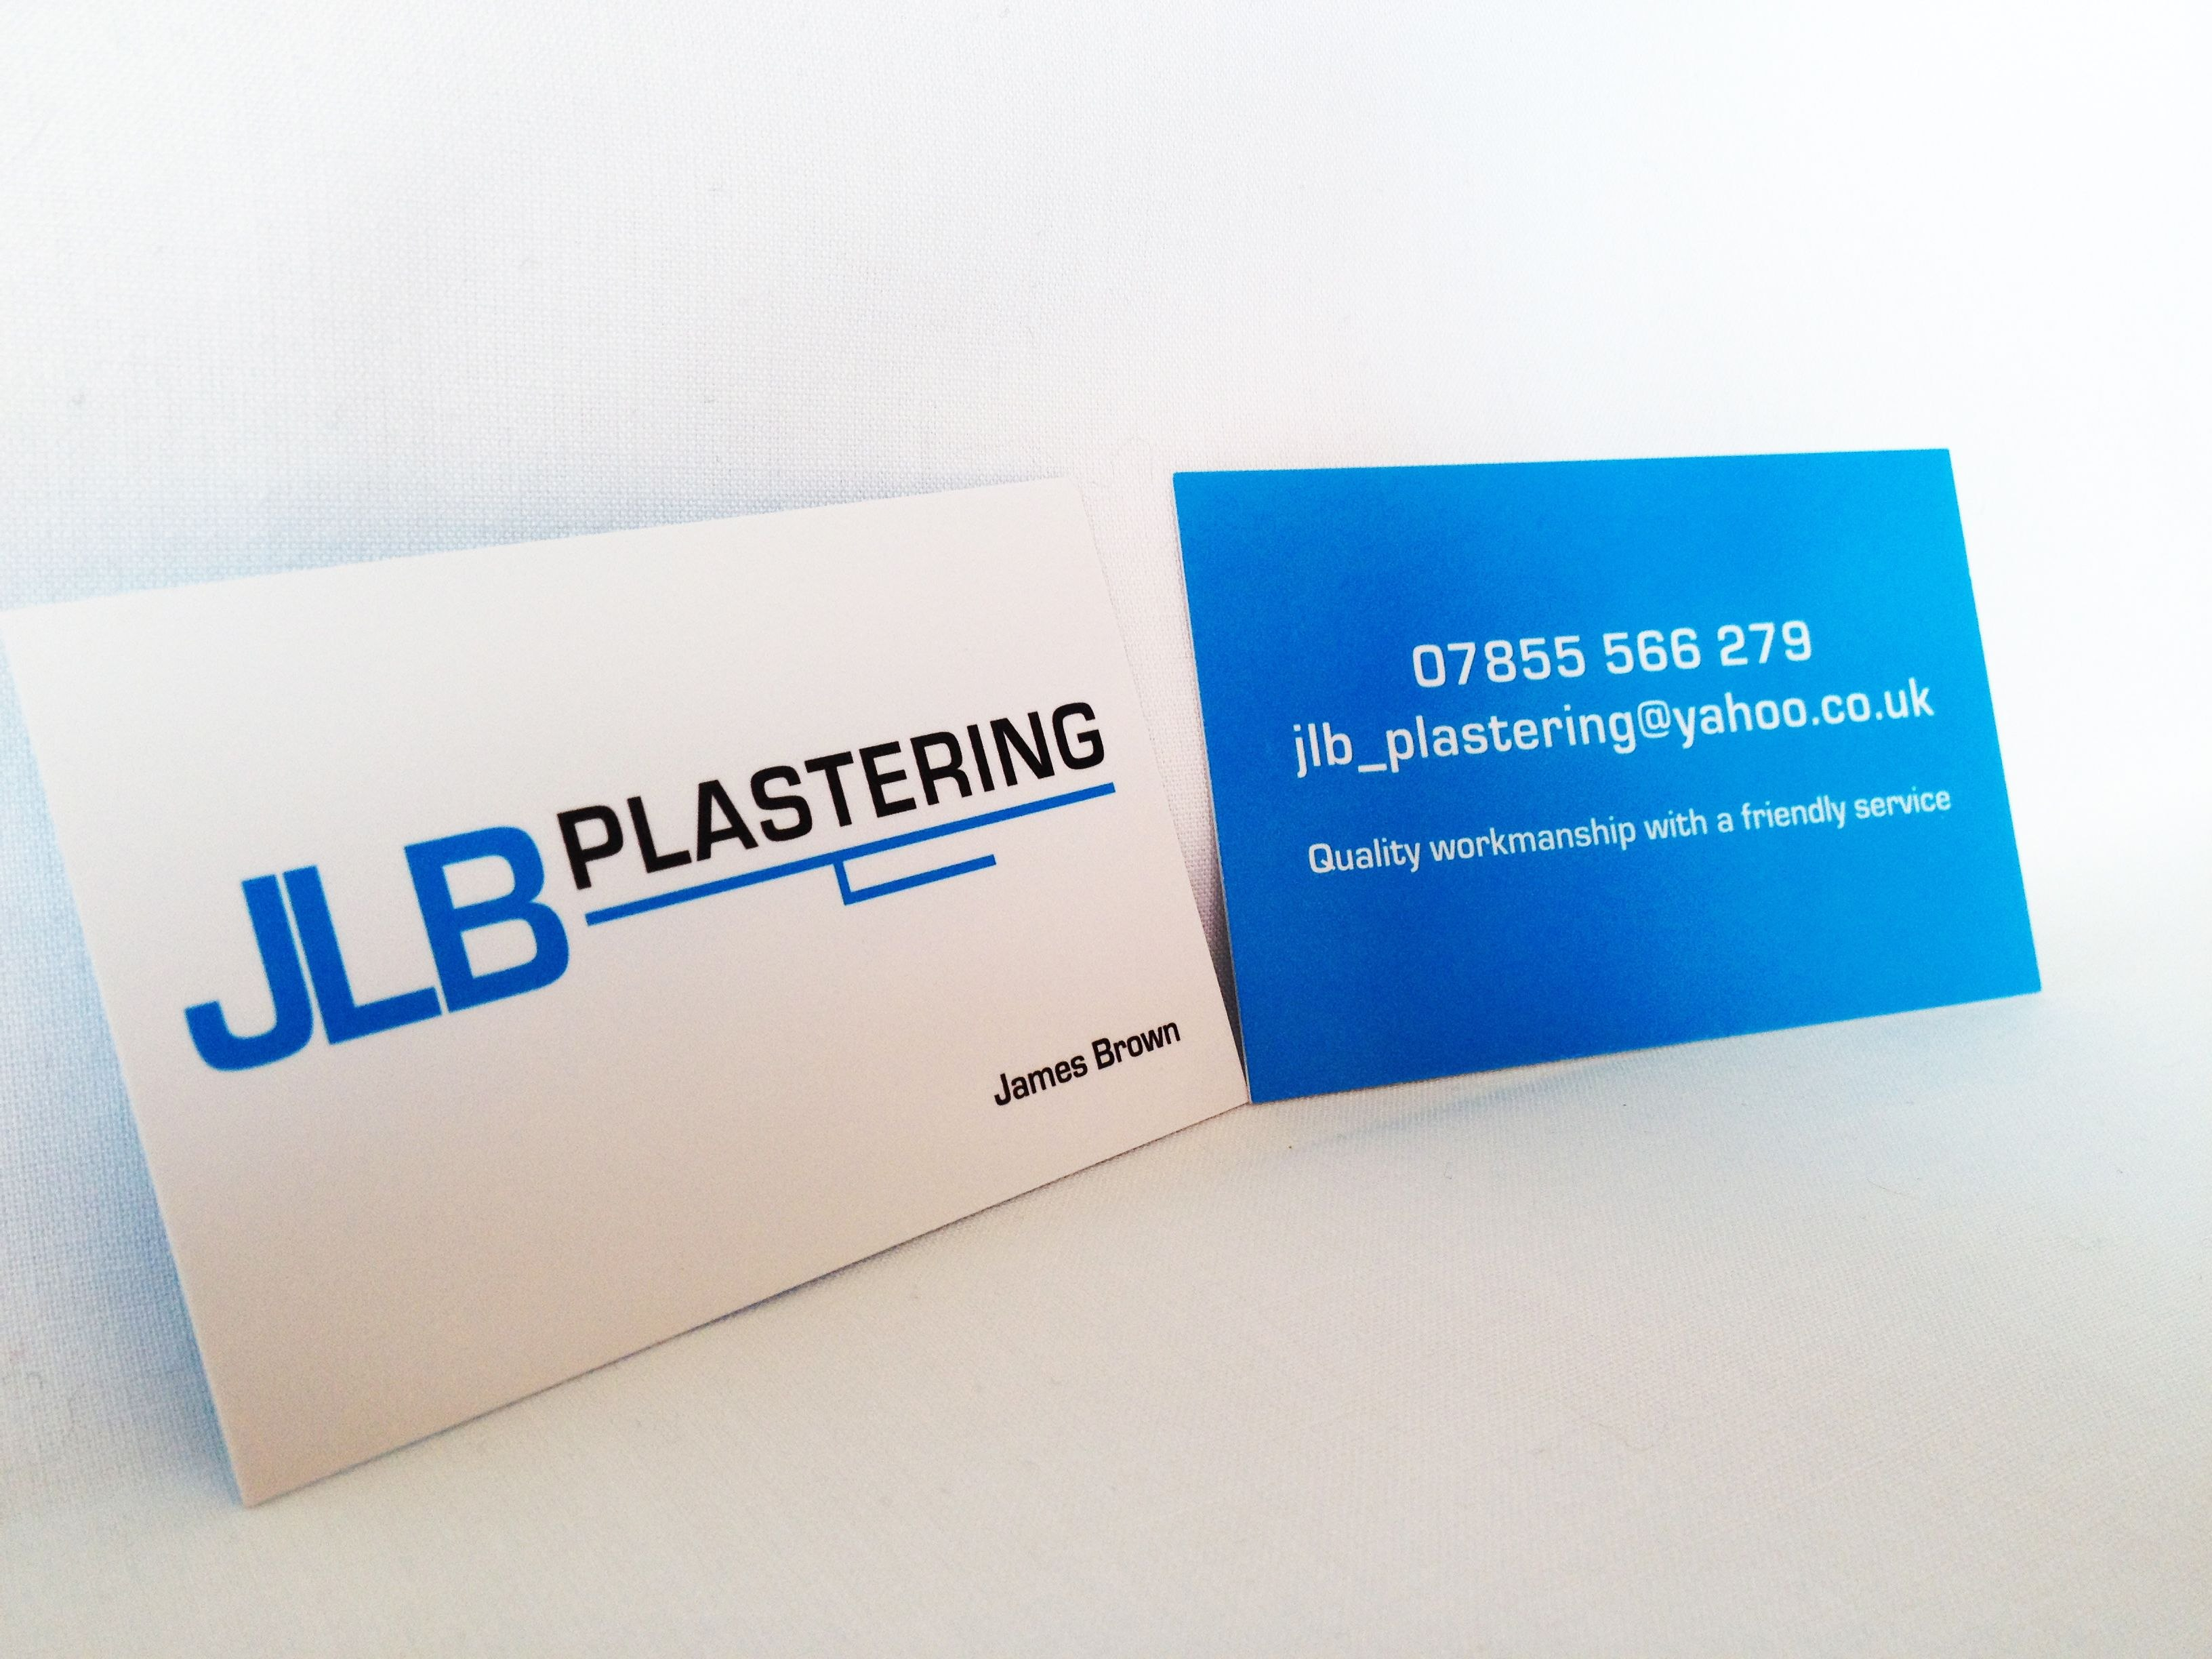 New Jlb Plastering Business Cards And Logo Design  Logo Throughout Plastering Business Cards Templates